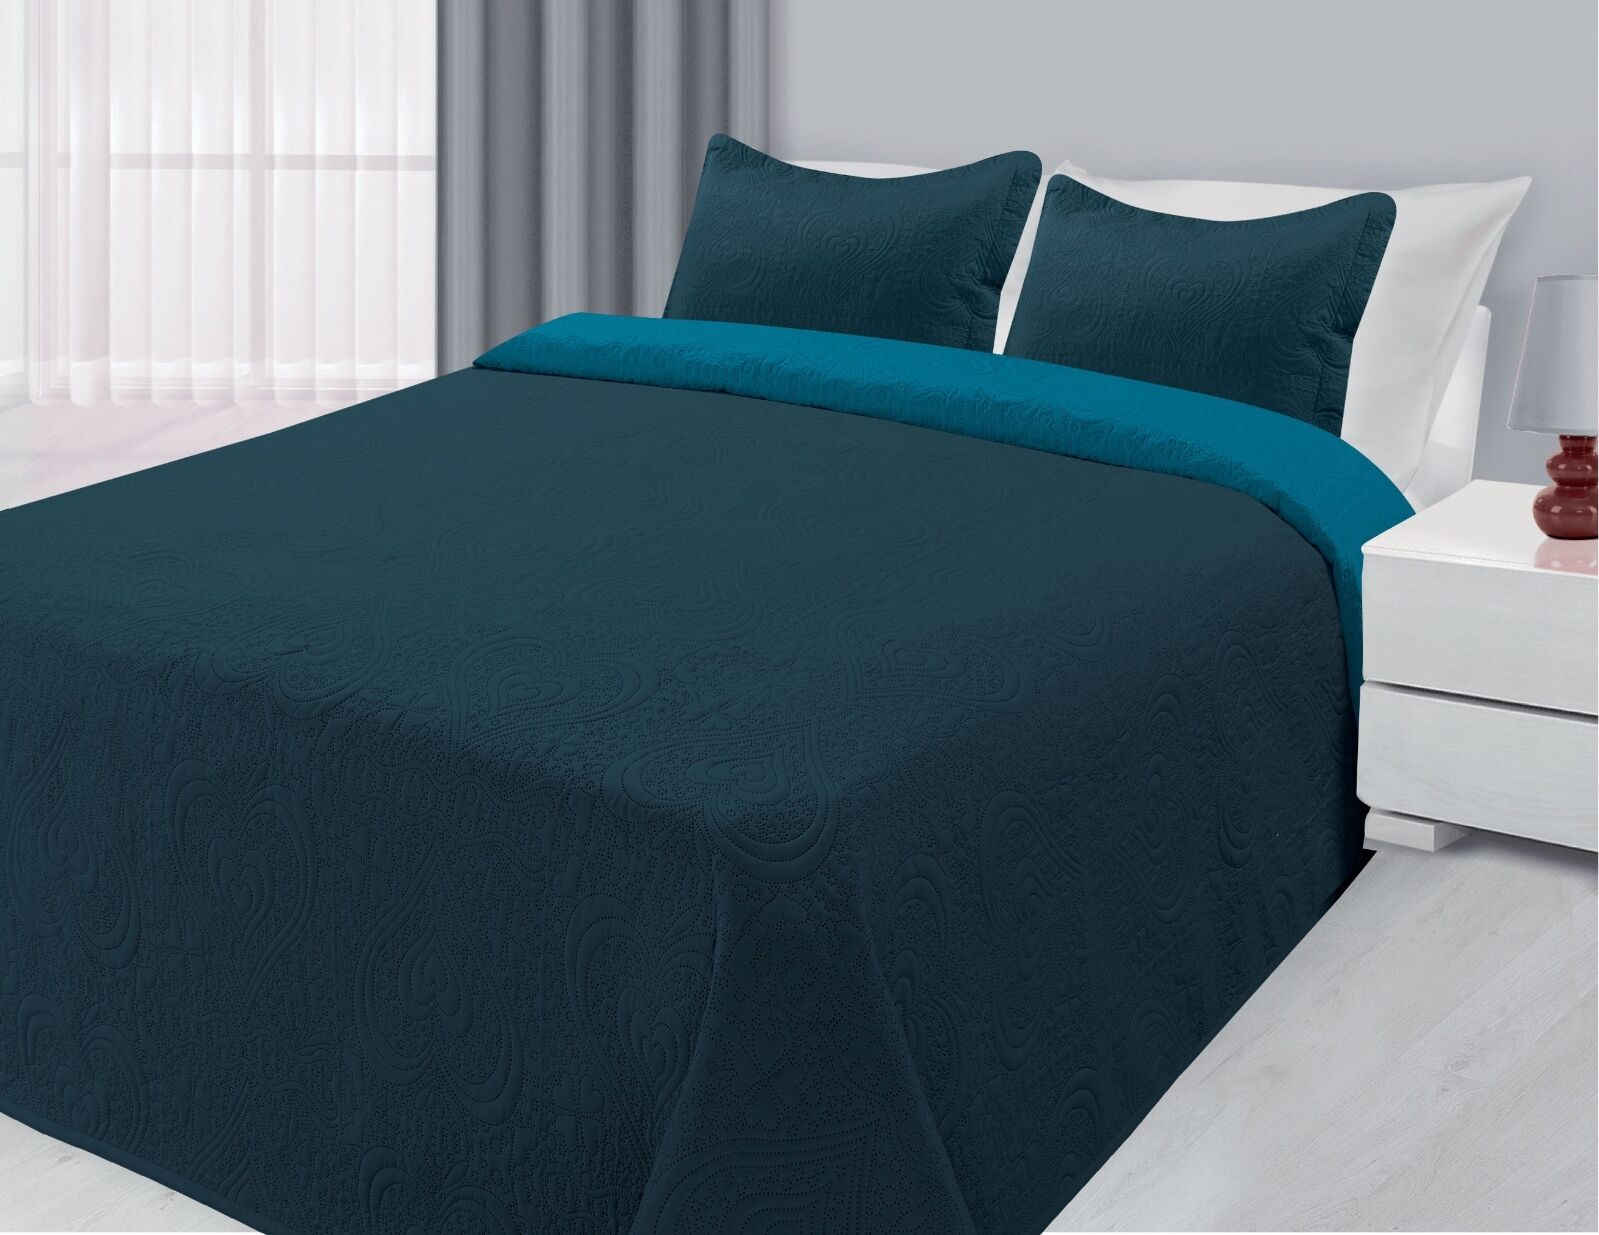 Reversible 3-Piece Solid Quilted Bedspread Coverlet Bedding Set - Navy & Blue